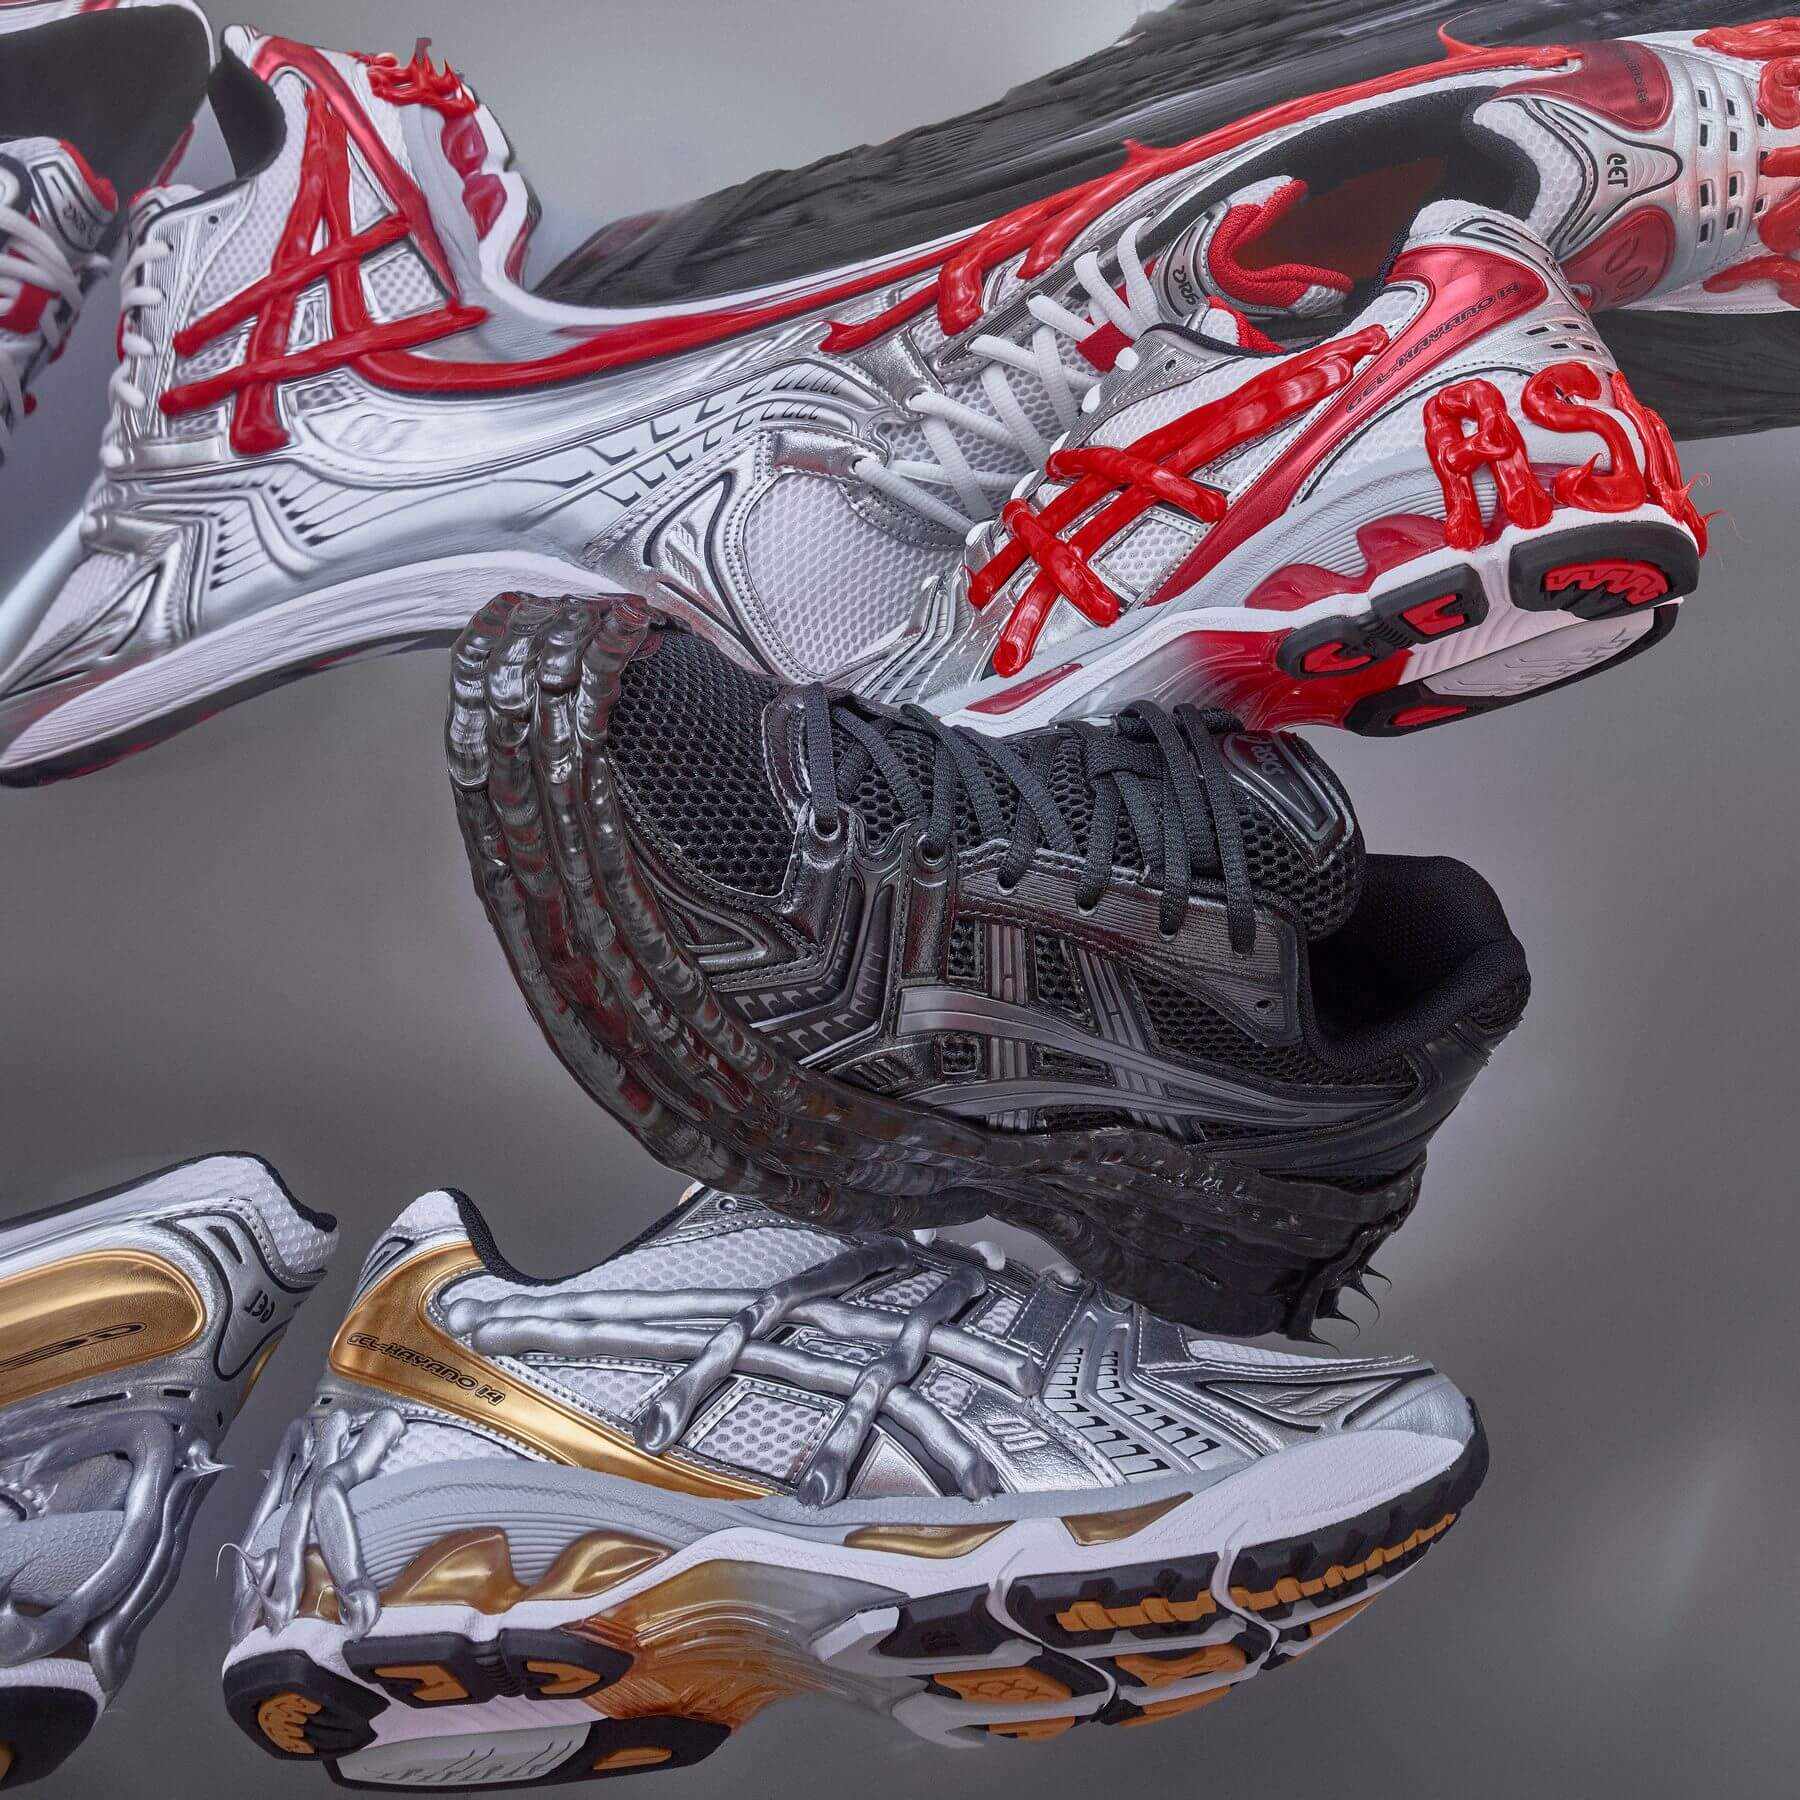 ASICSx Dennis Buck - Gel Kayano 14 collage - red black and yellow